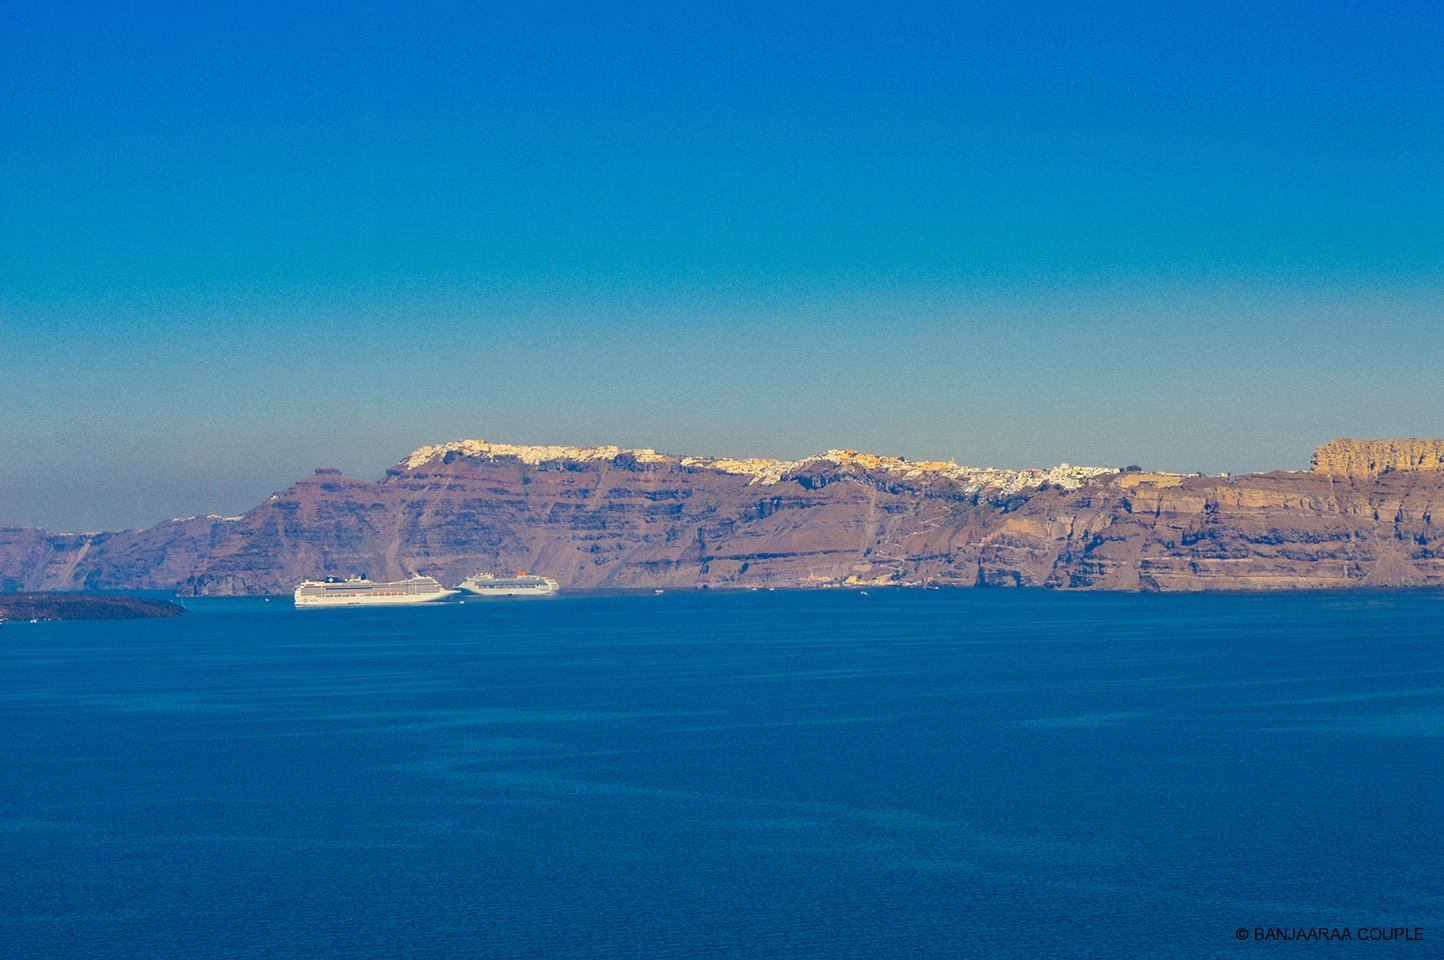 View of the Other side of the island. One can see Fira at the top and Port at the bottom